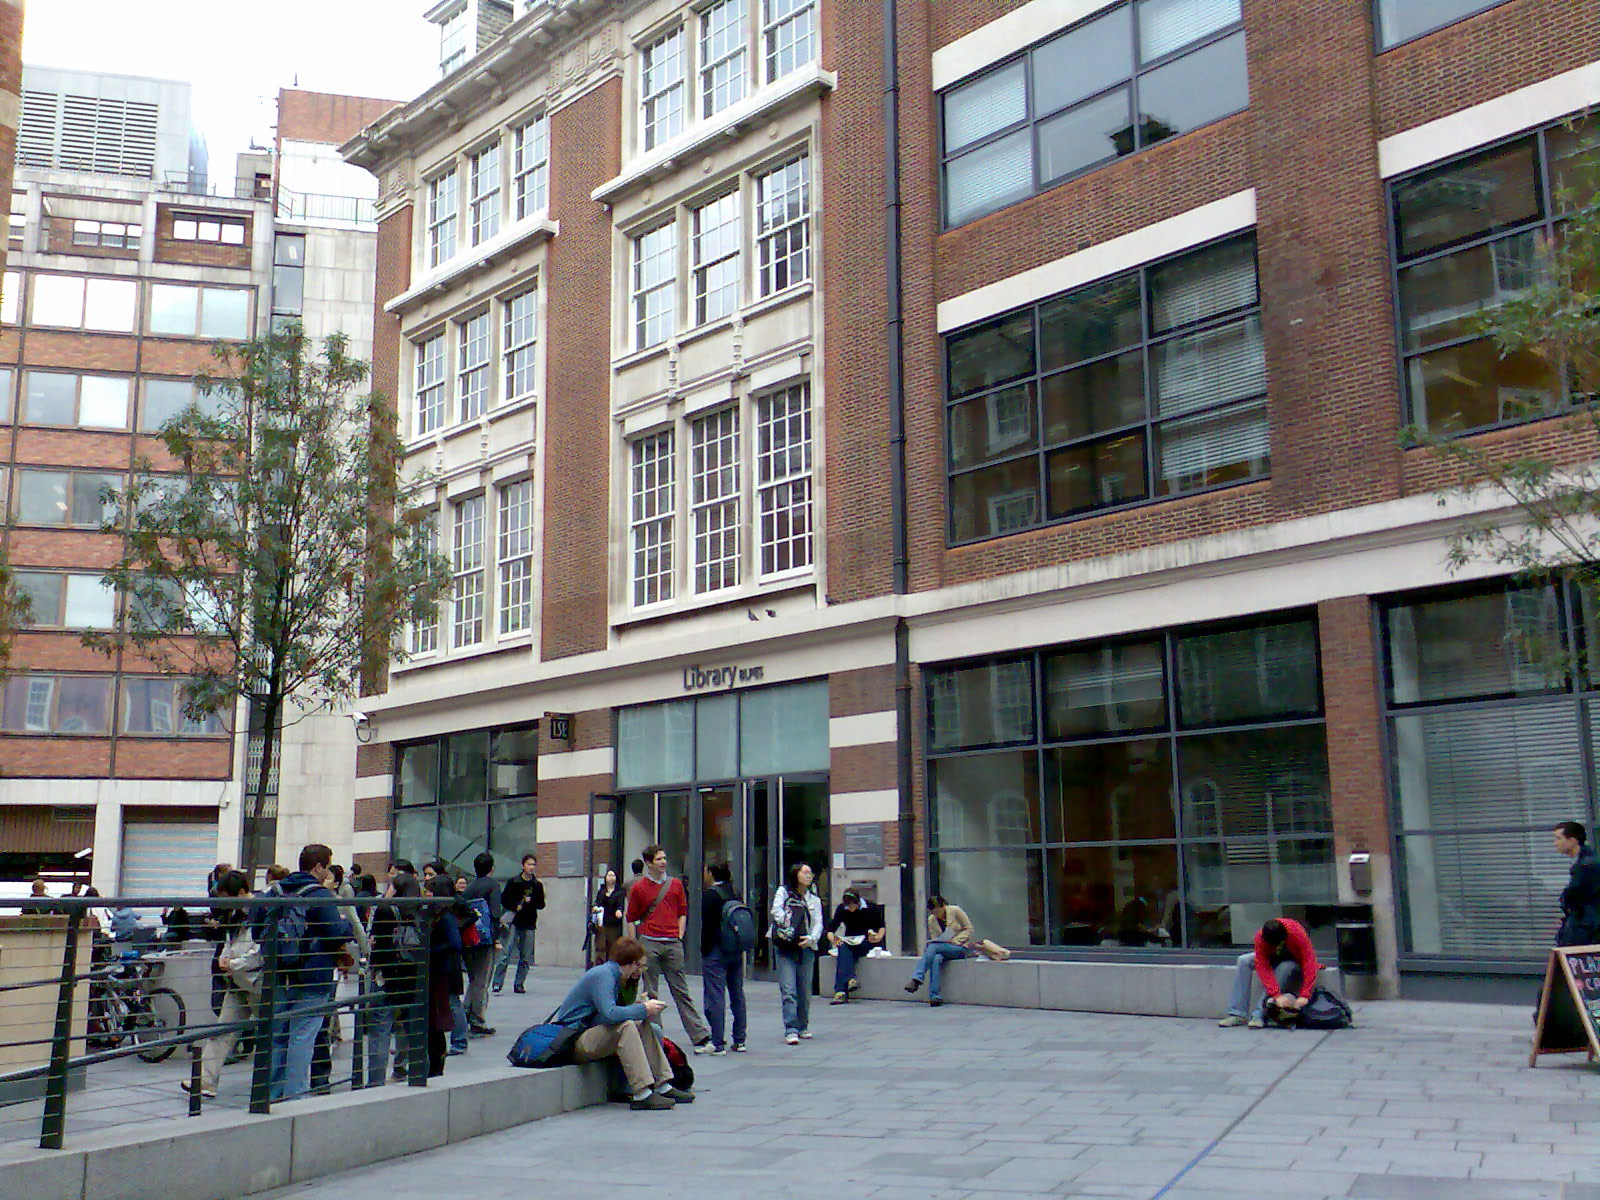 15 of the Best International Schools for Photography - Resource Best school of photography in london